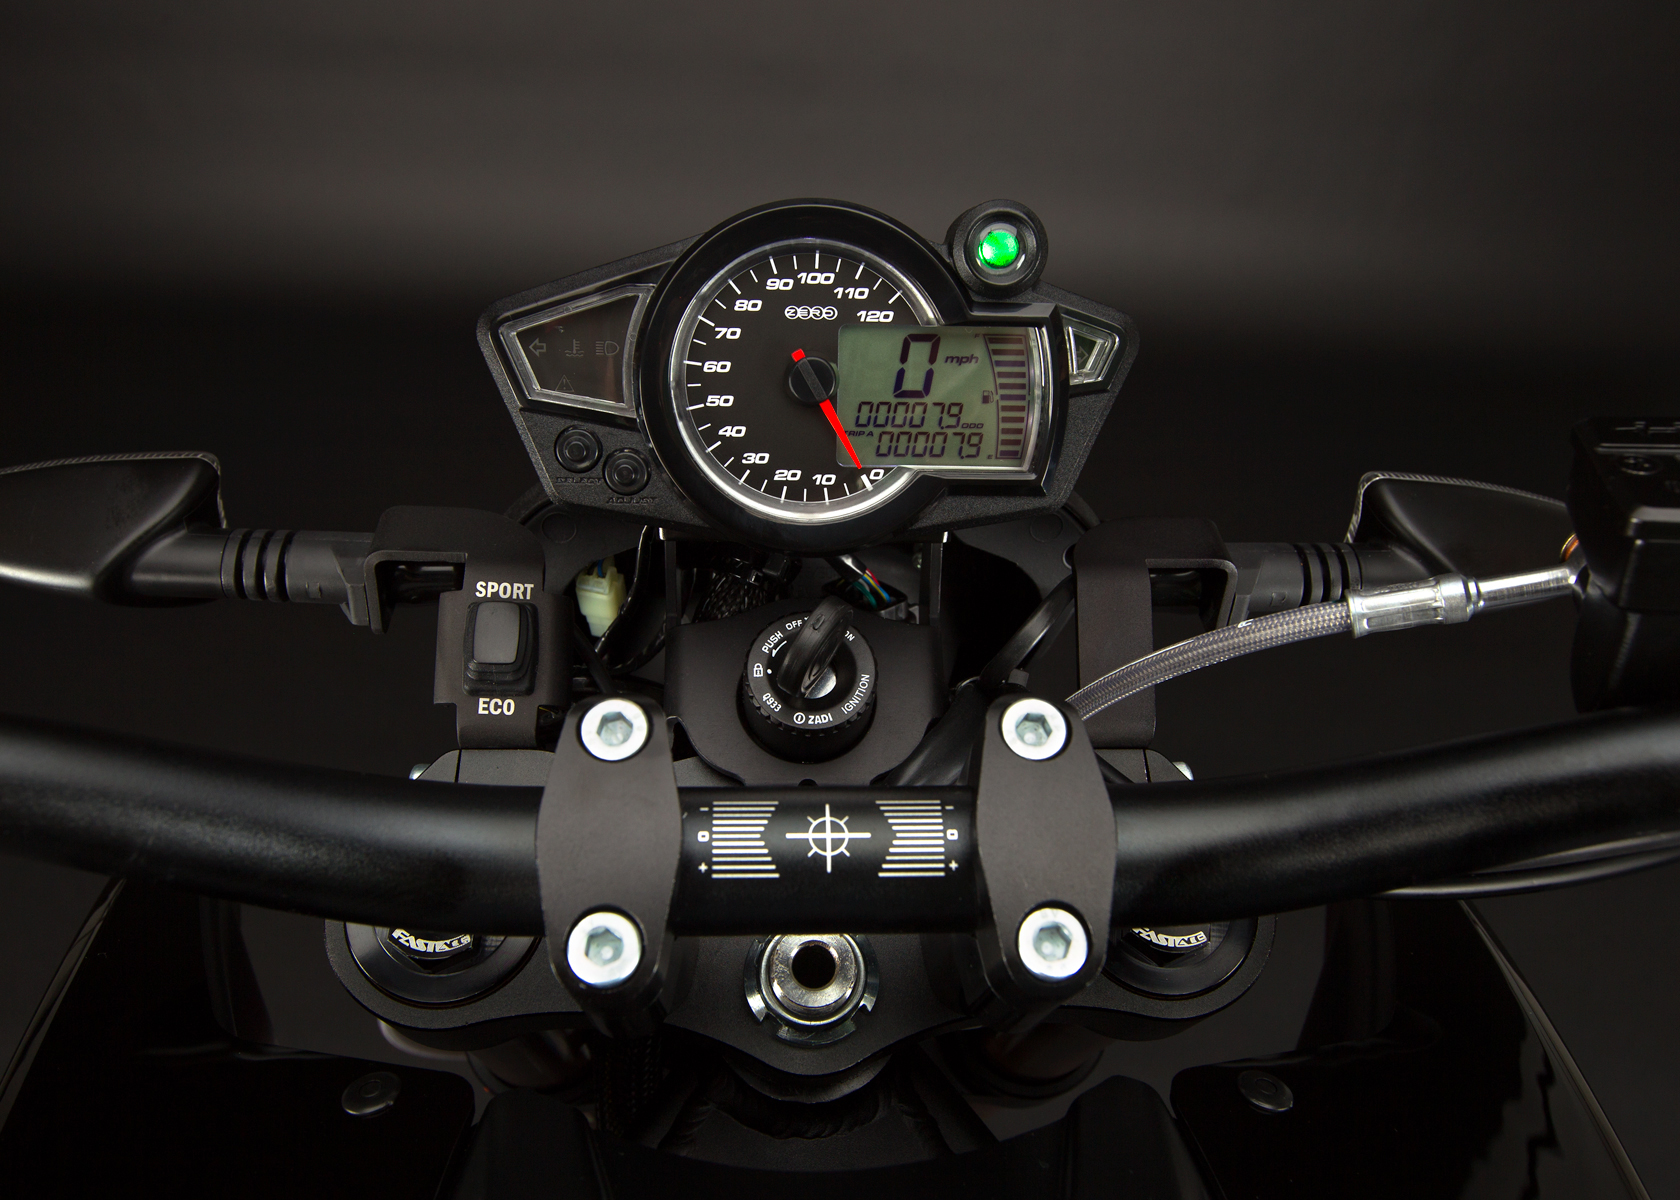 2012 Zero S Electric Motorcycle: Dashboard